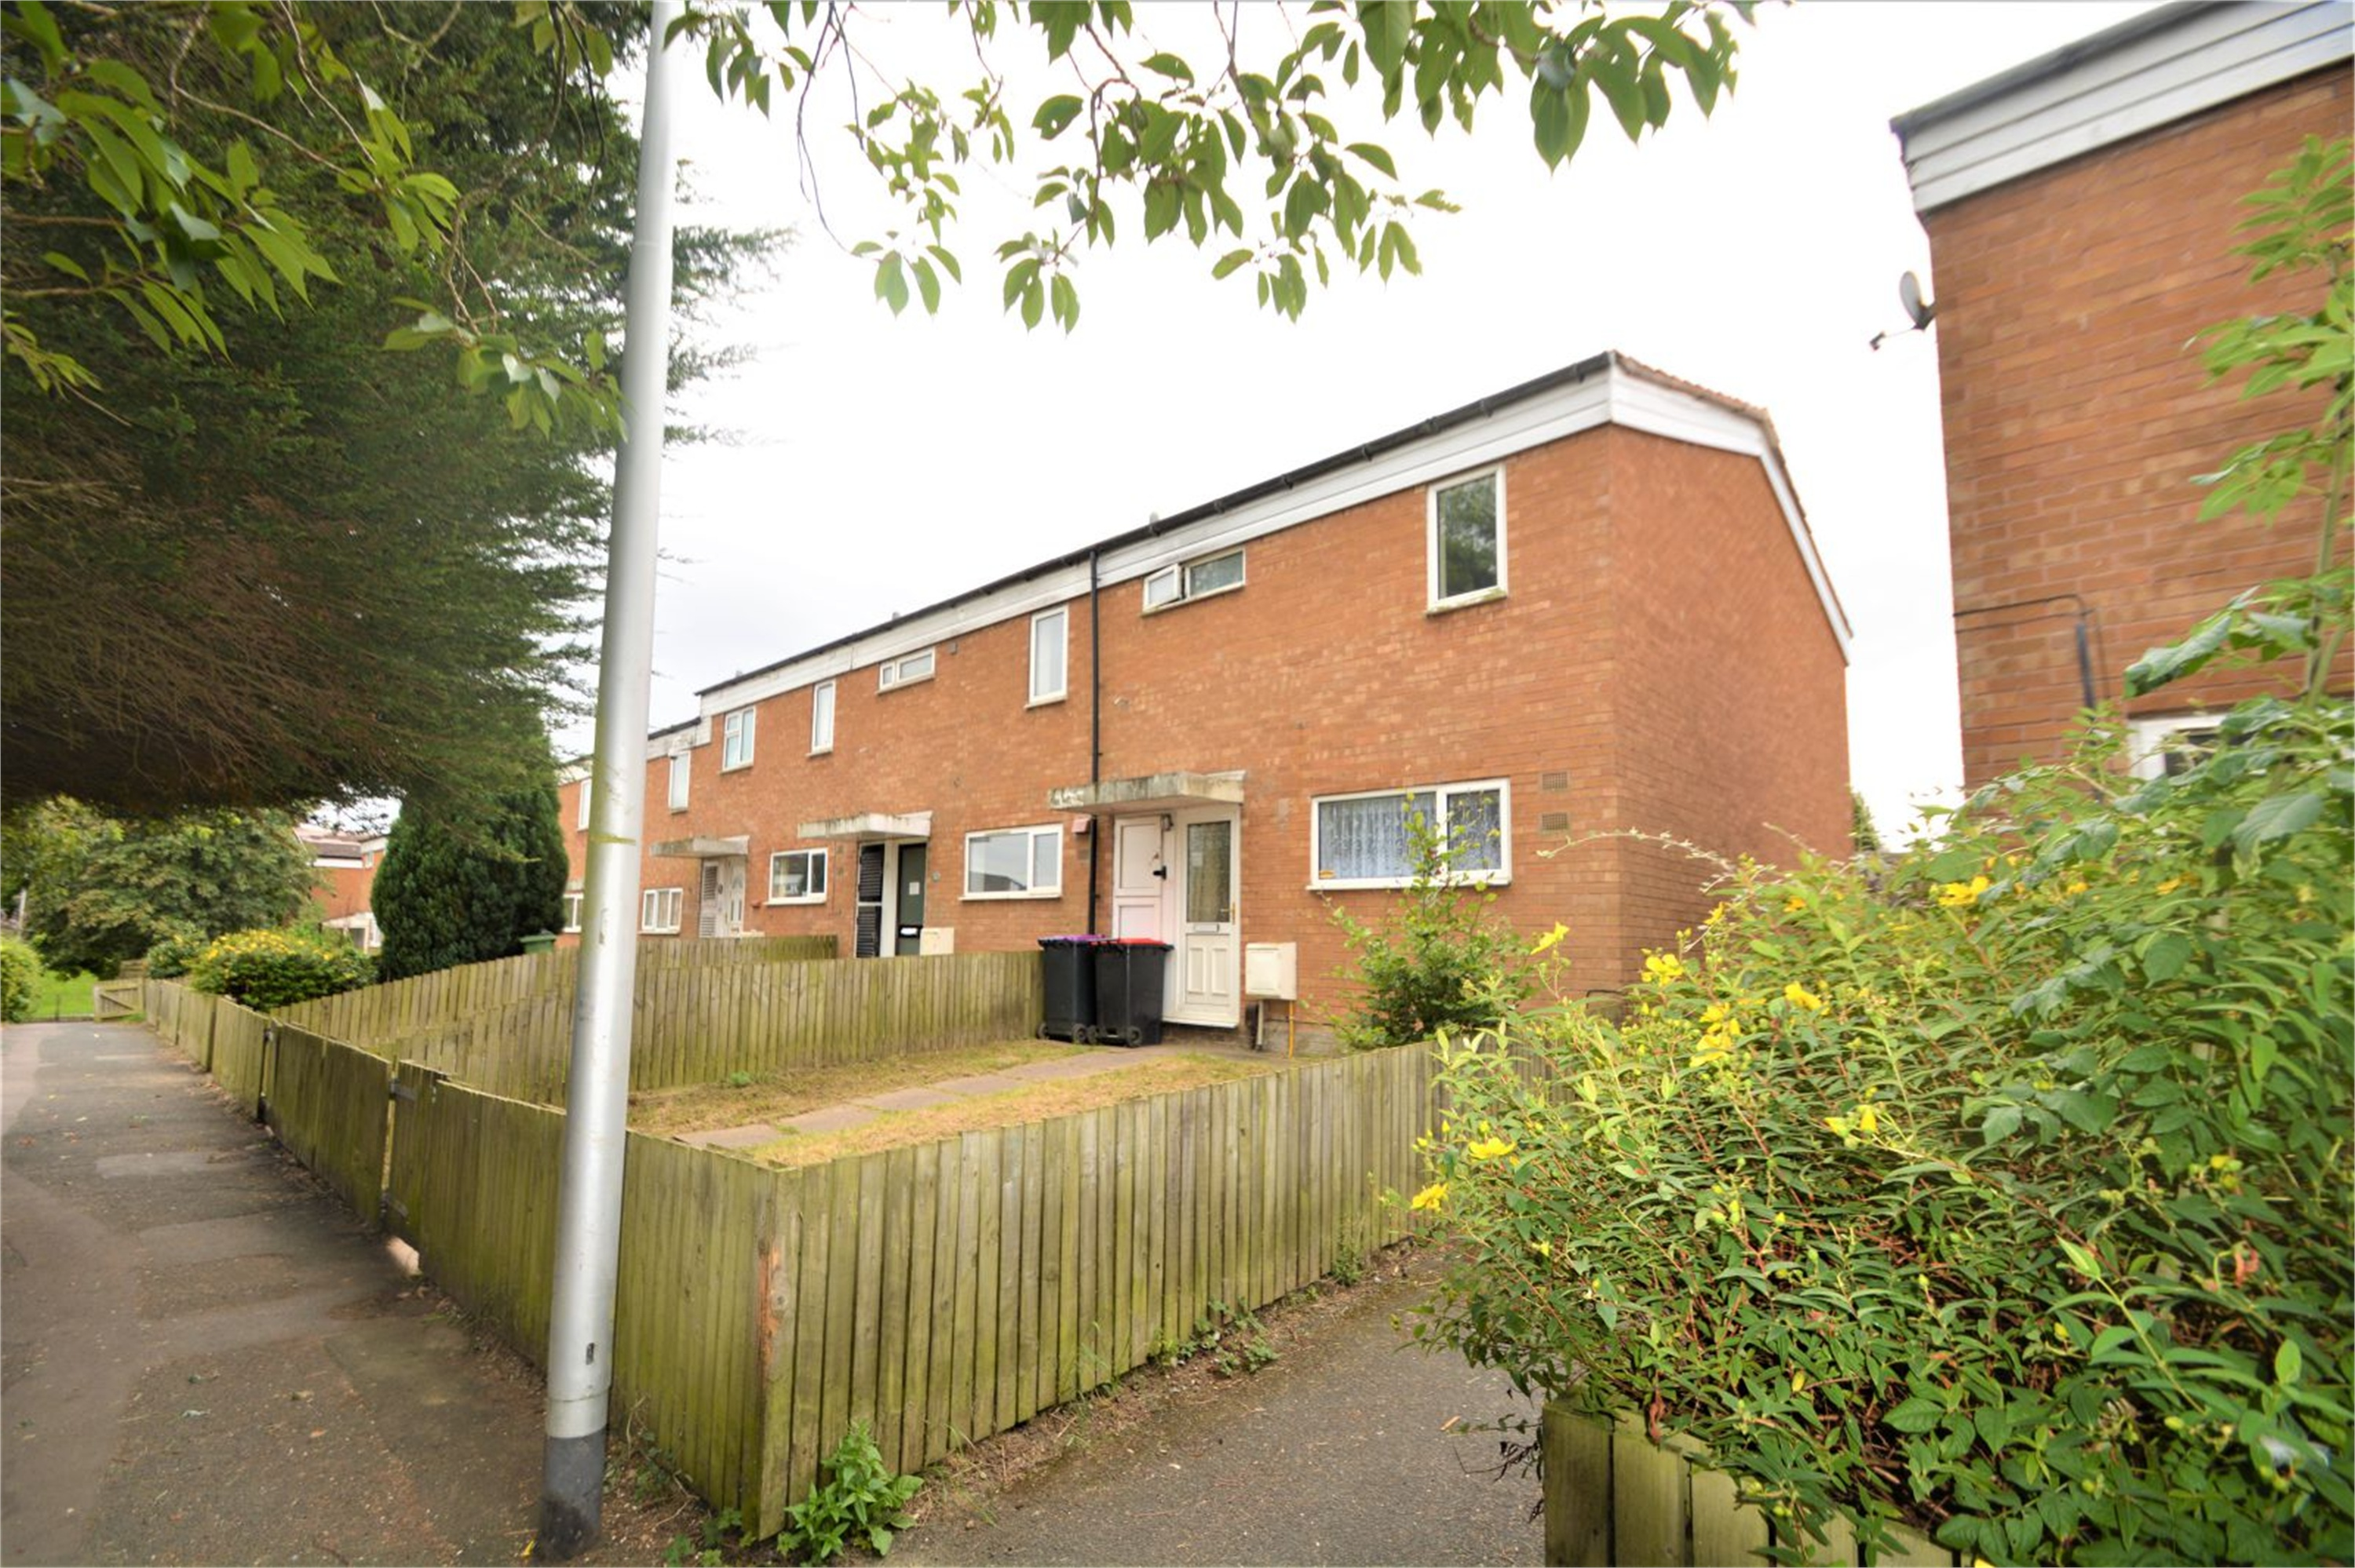 3 Bedrooms Terraced House for sale in 53 Weybridge, Woodside, Telford, Shropshire, TF7